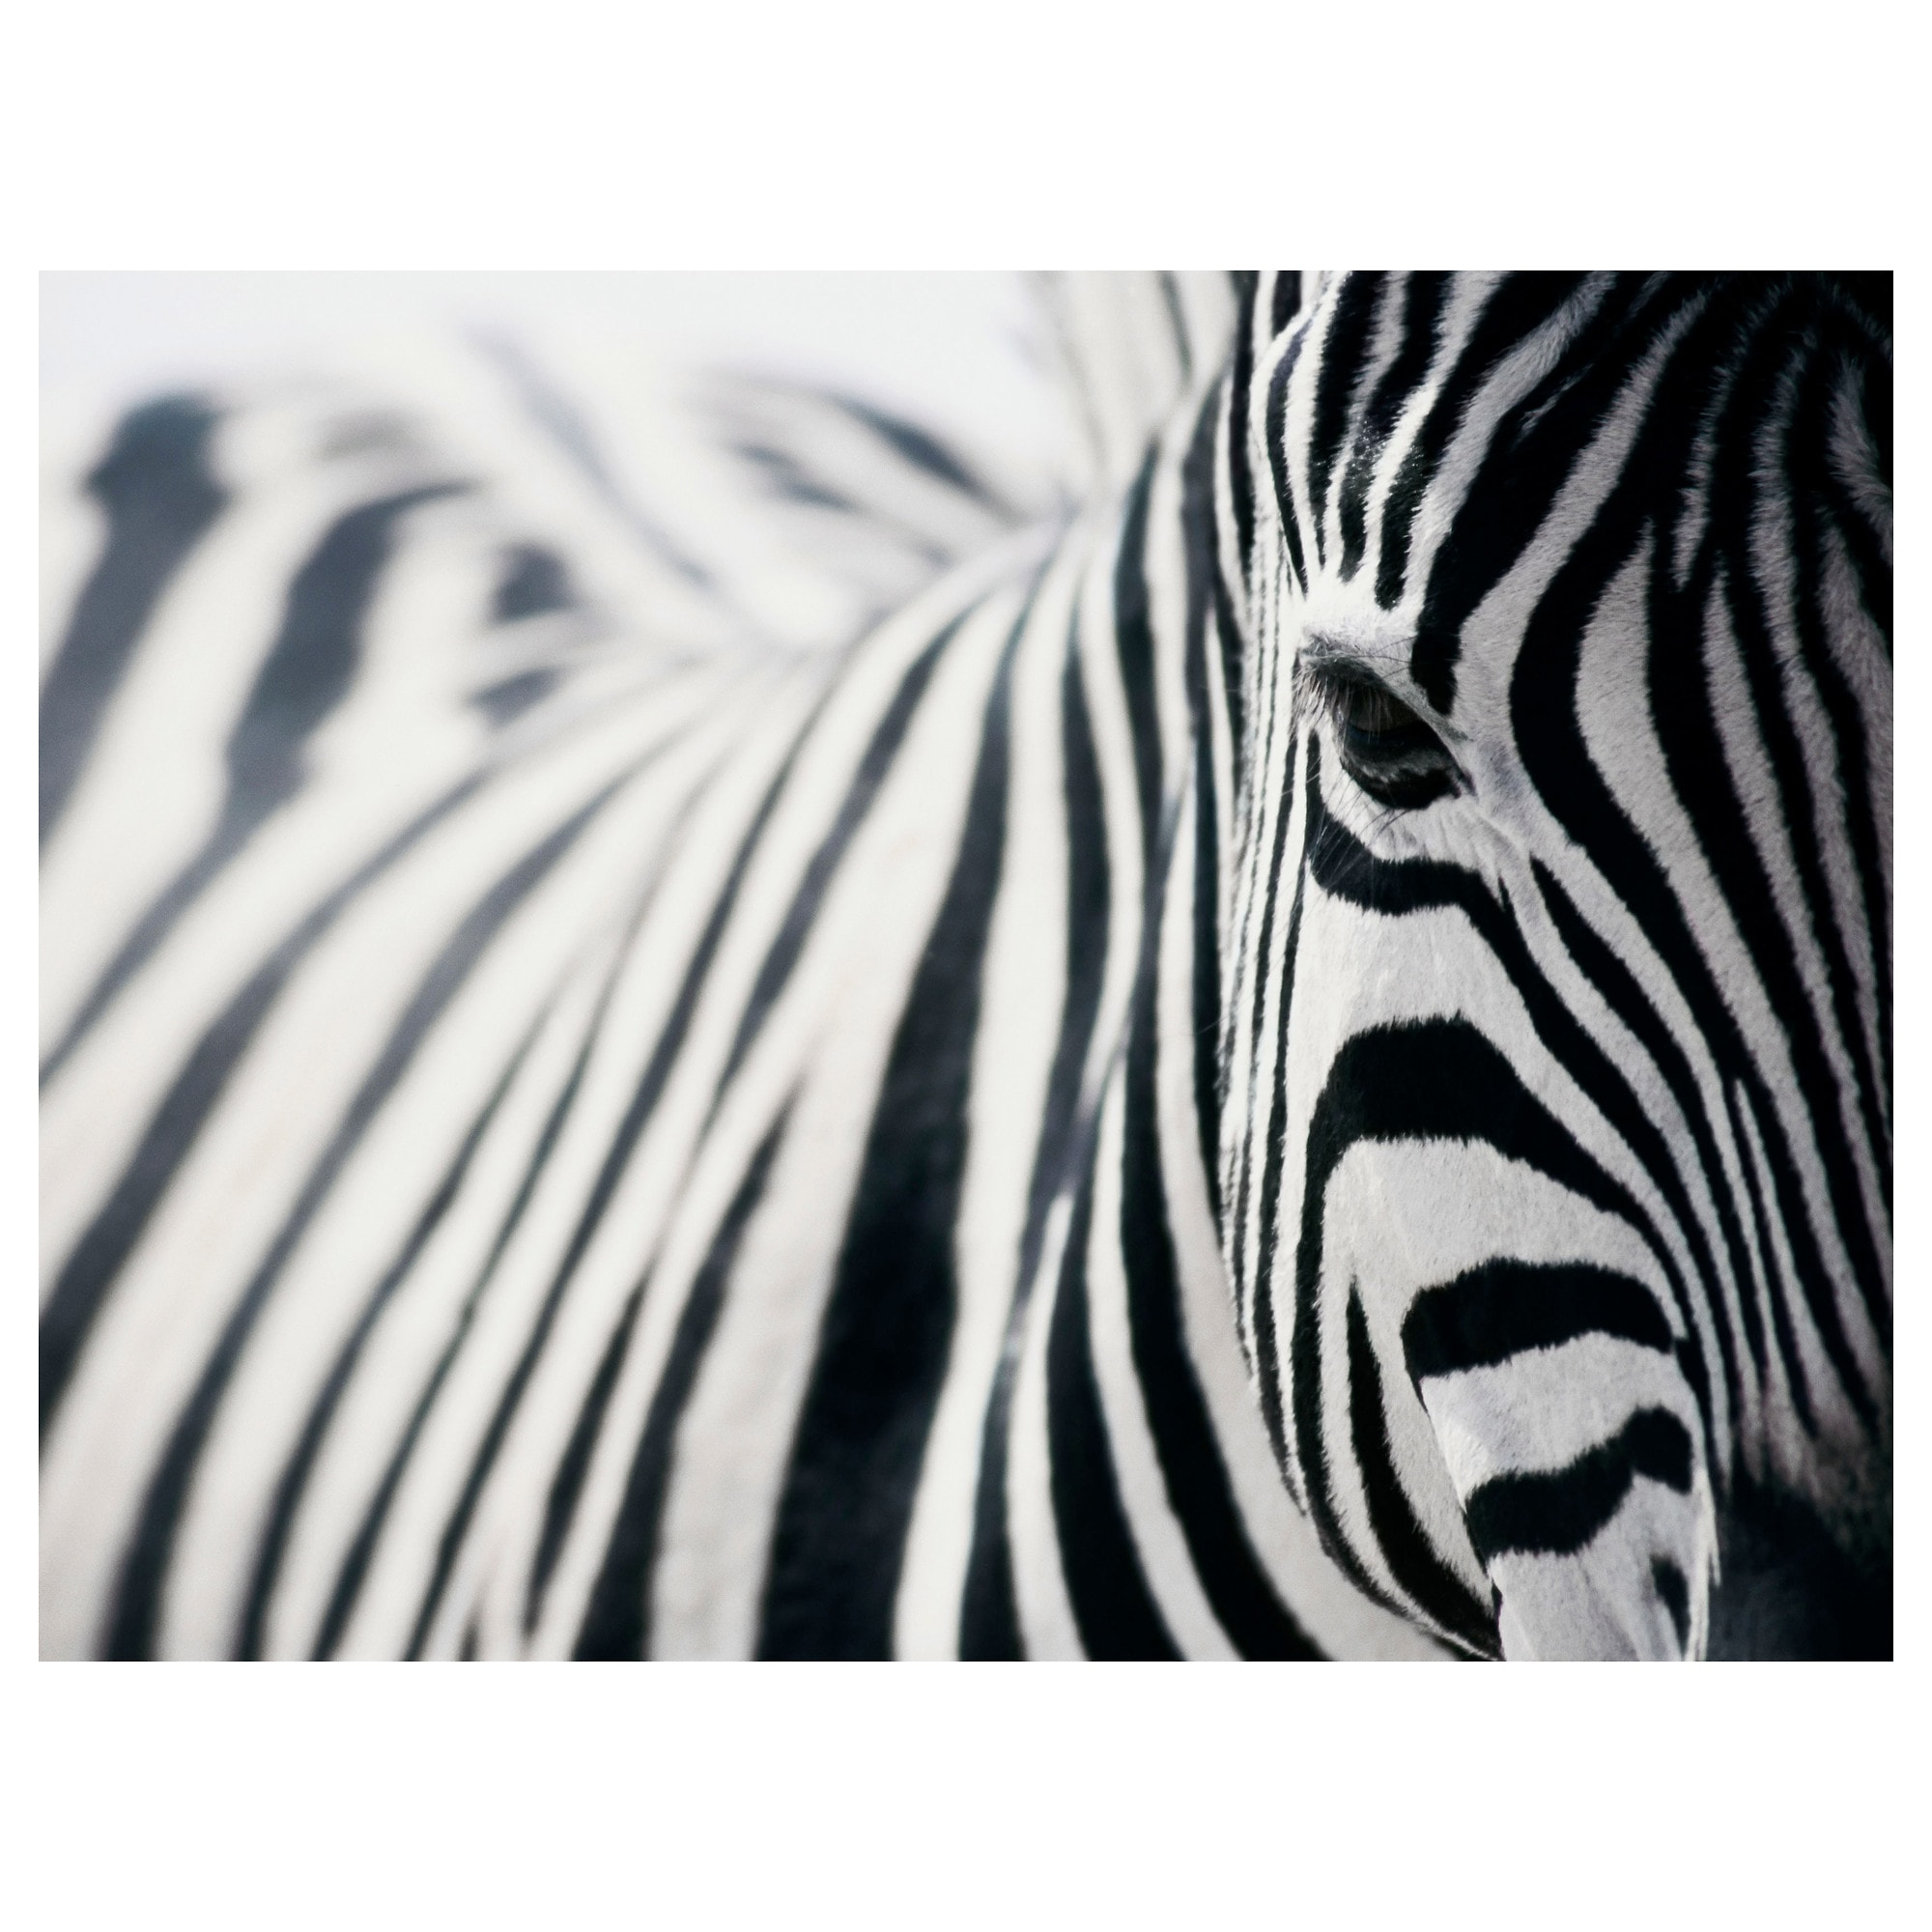 1000 images about zebra on pinterest. Black Bedroom Furniture Sets. Home Design Ideas